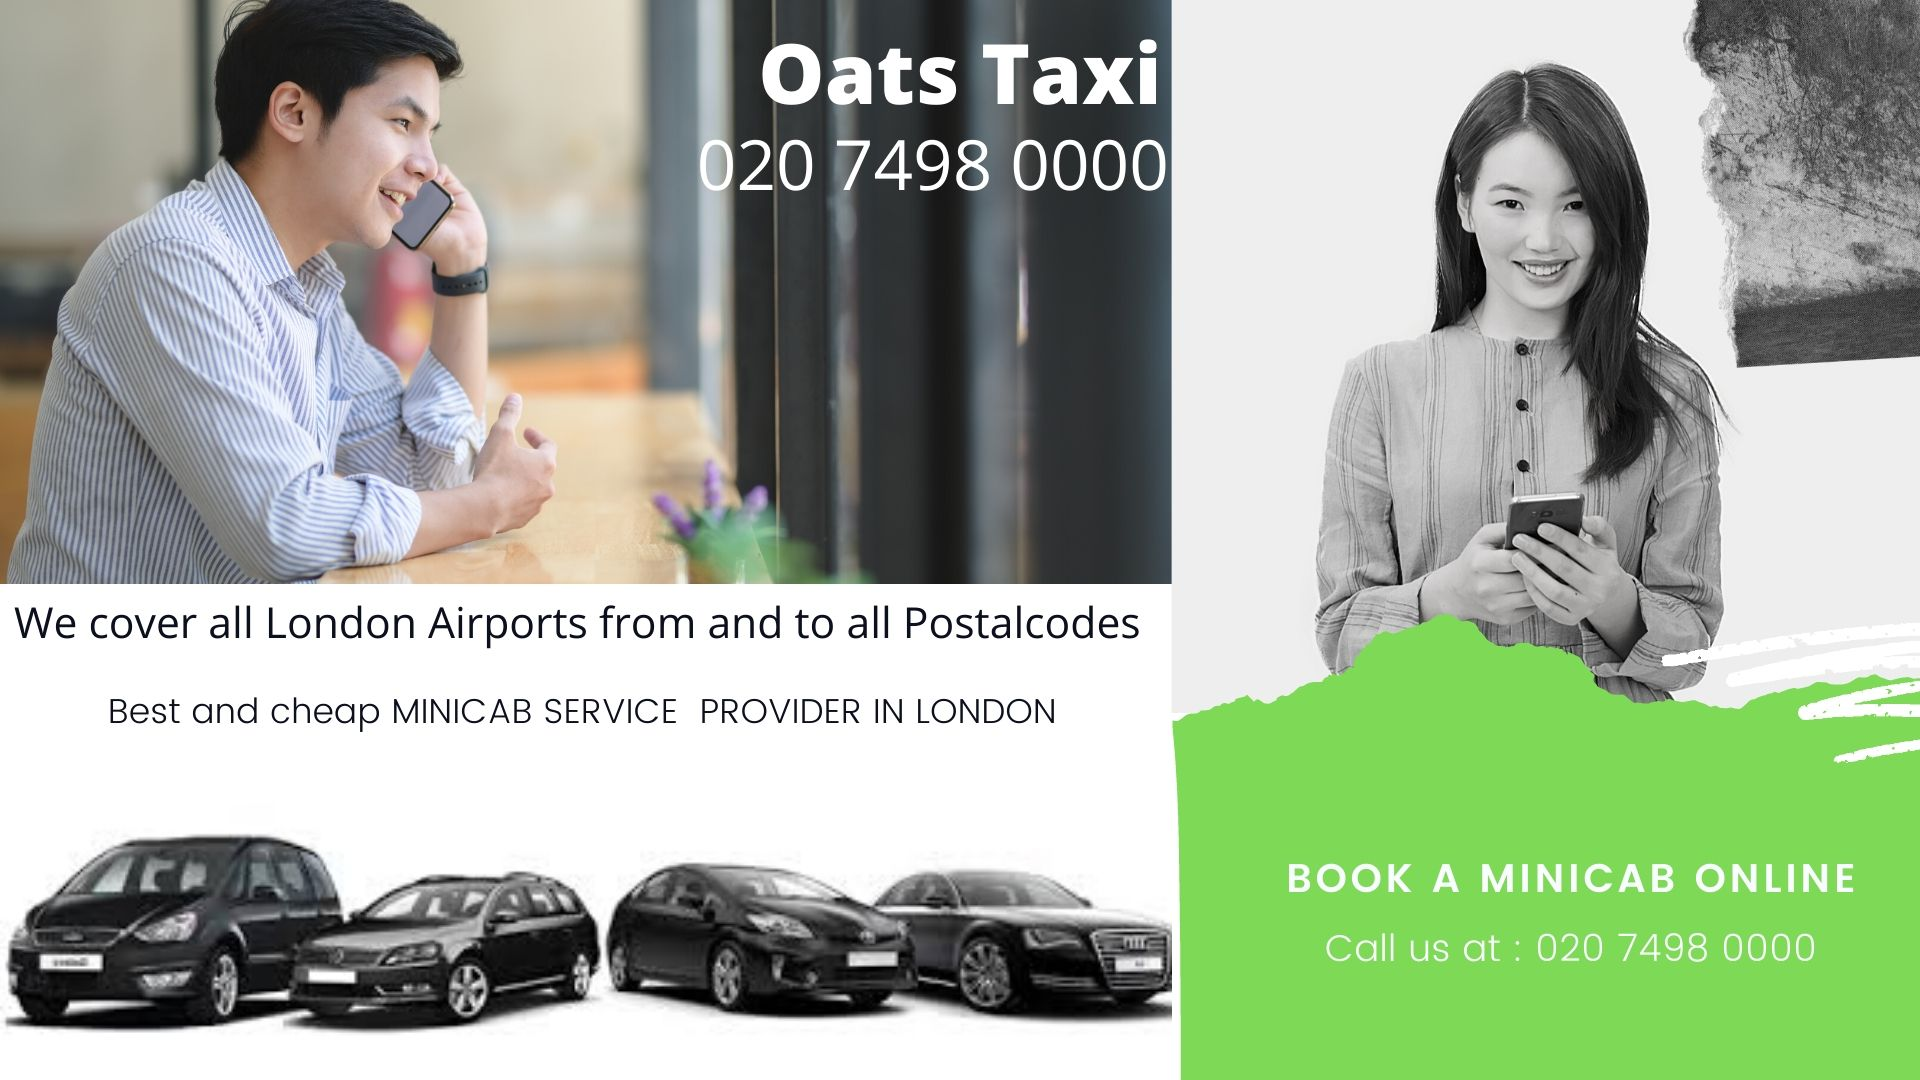 Minicab Near ORBEL STREET, Battersea SW11, Minicab From Battersea SW11 To Gatwick Airport